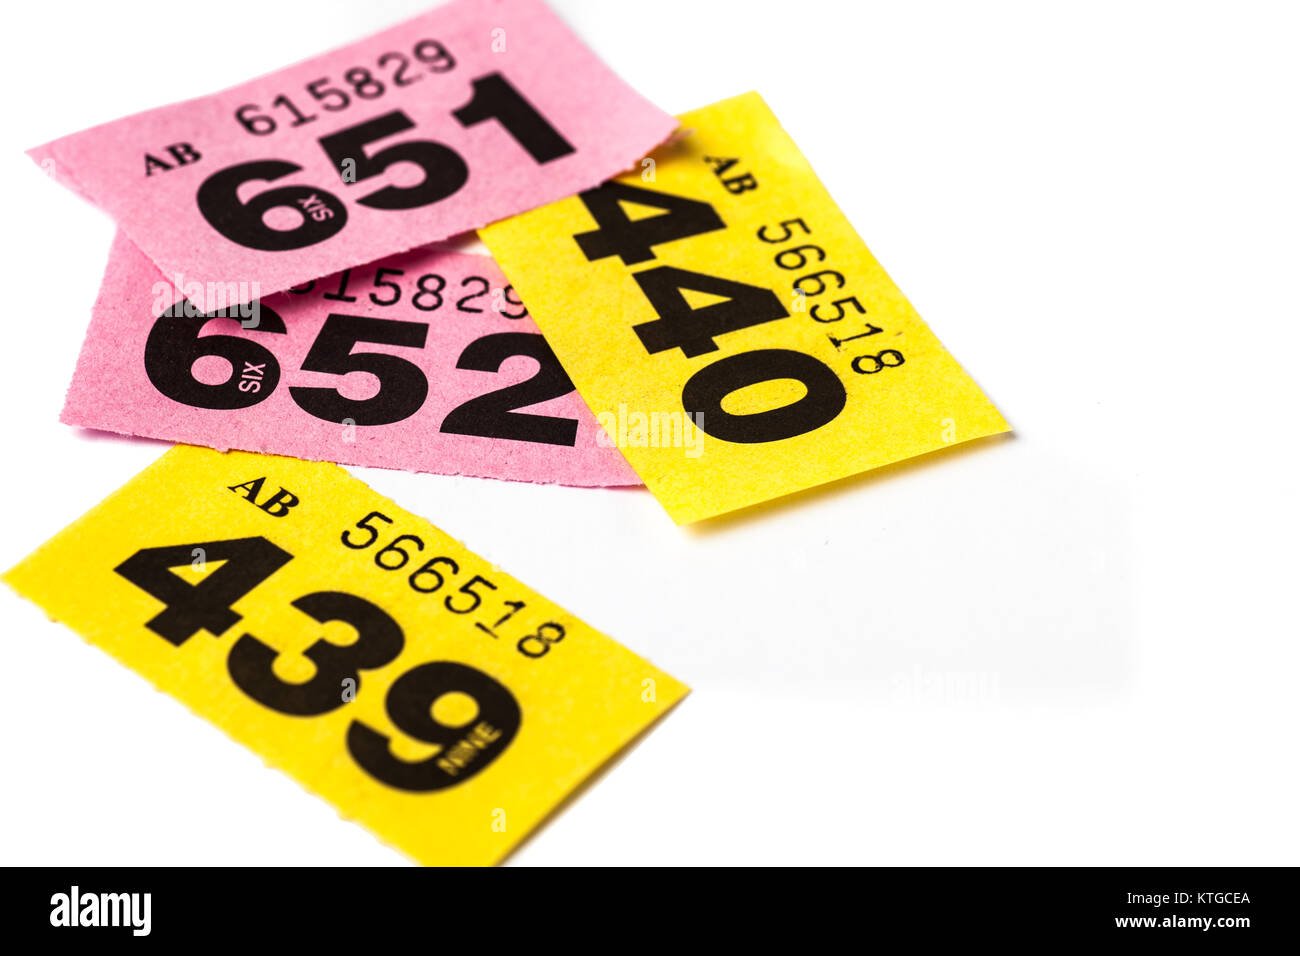 yellow and pink raffle tickets on white background